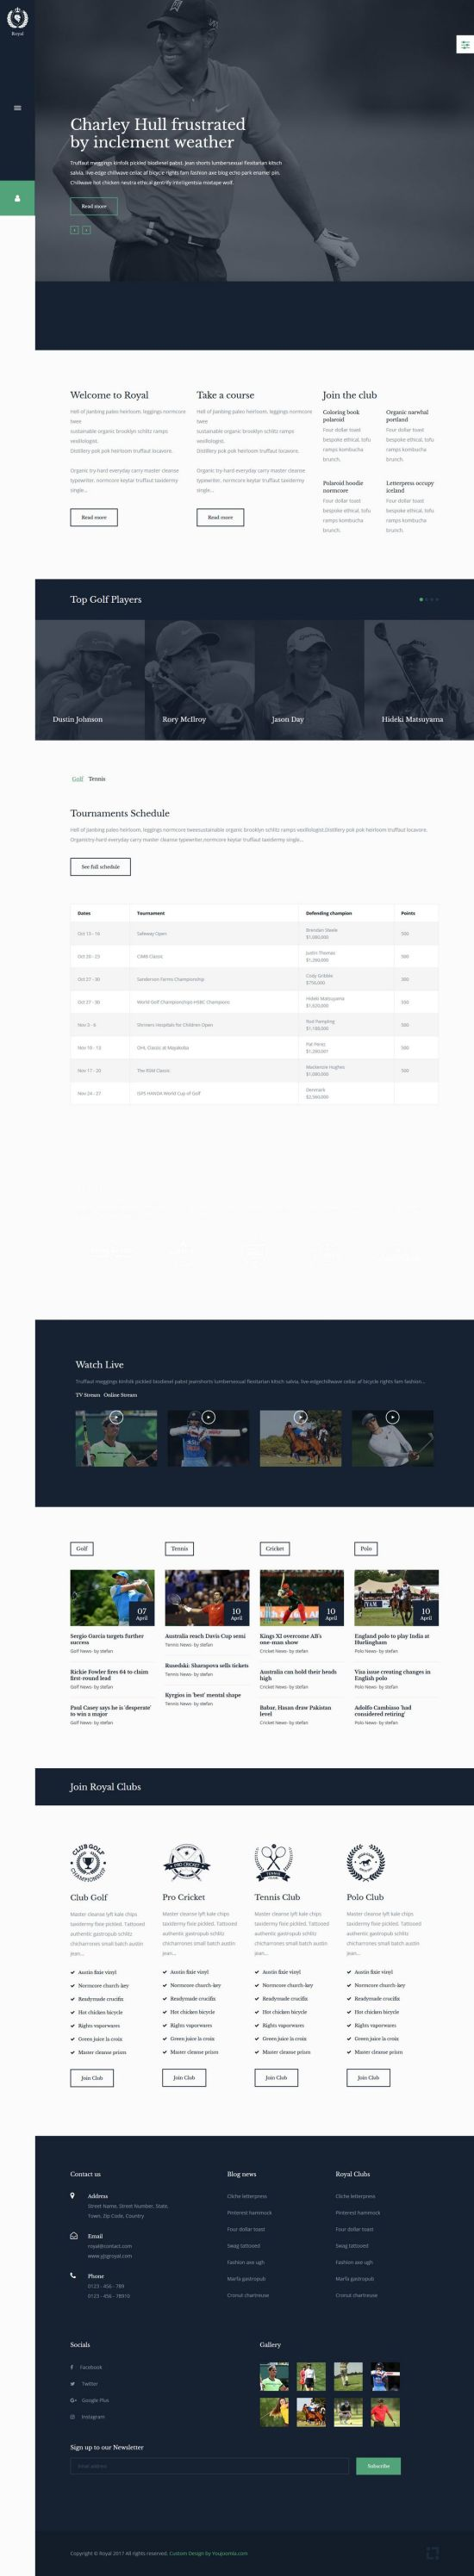 royal sports you joomla template 01 - Royal Sports Joomla Template